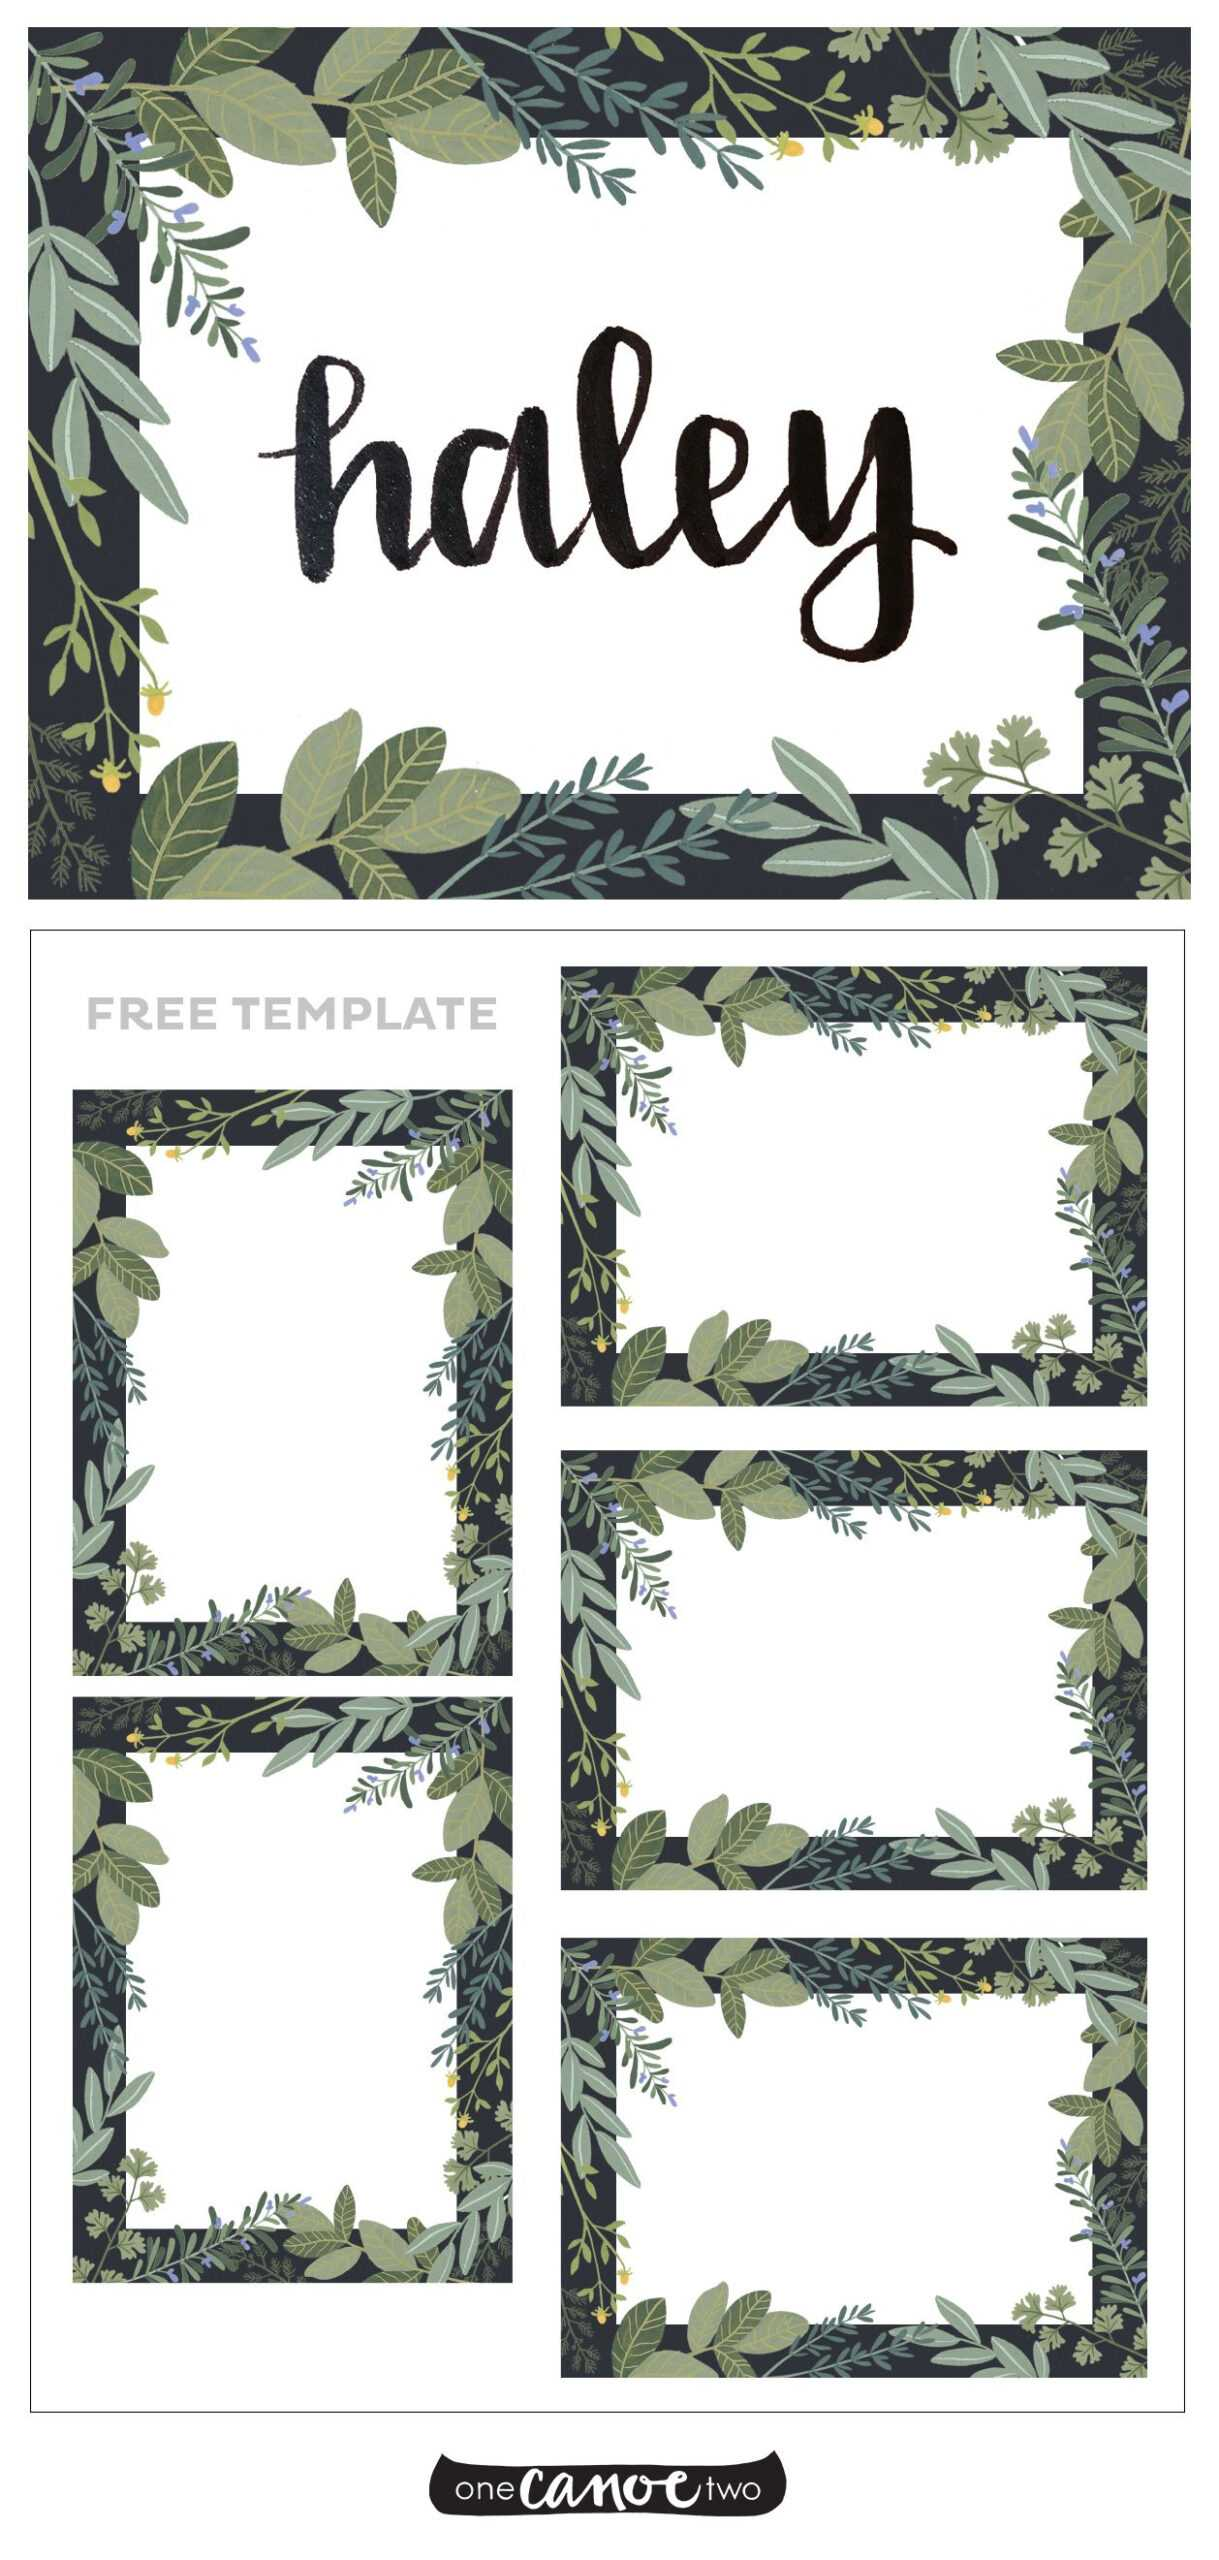 031 Free Place Card Template Excellent Ideas Download Word Within Free Template For Place Cards 6 Per Sheet